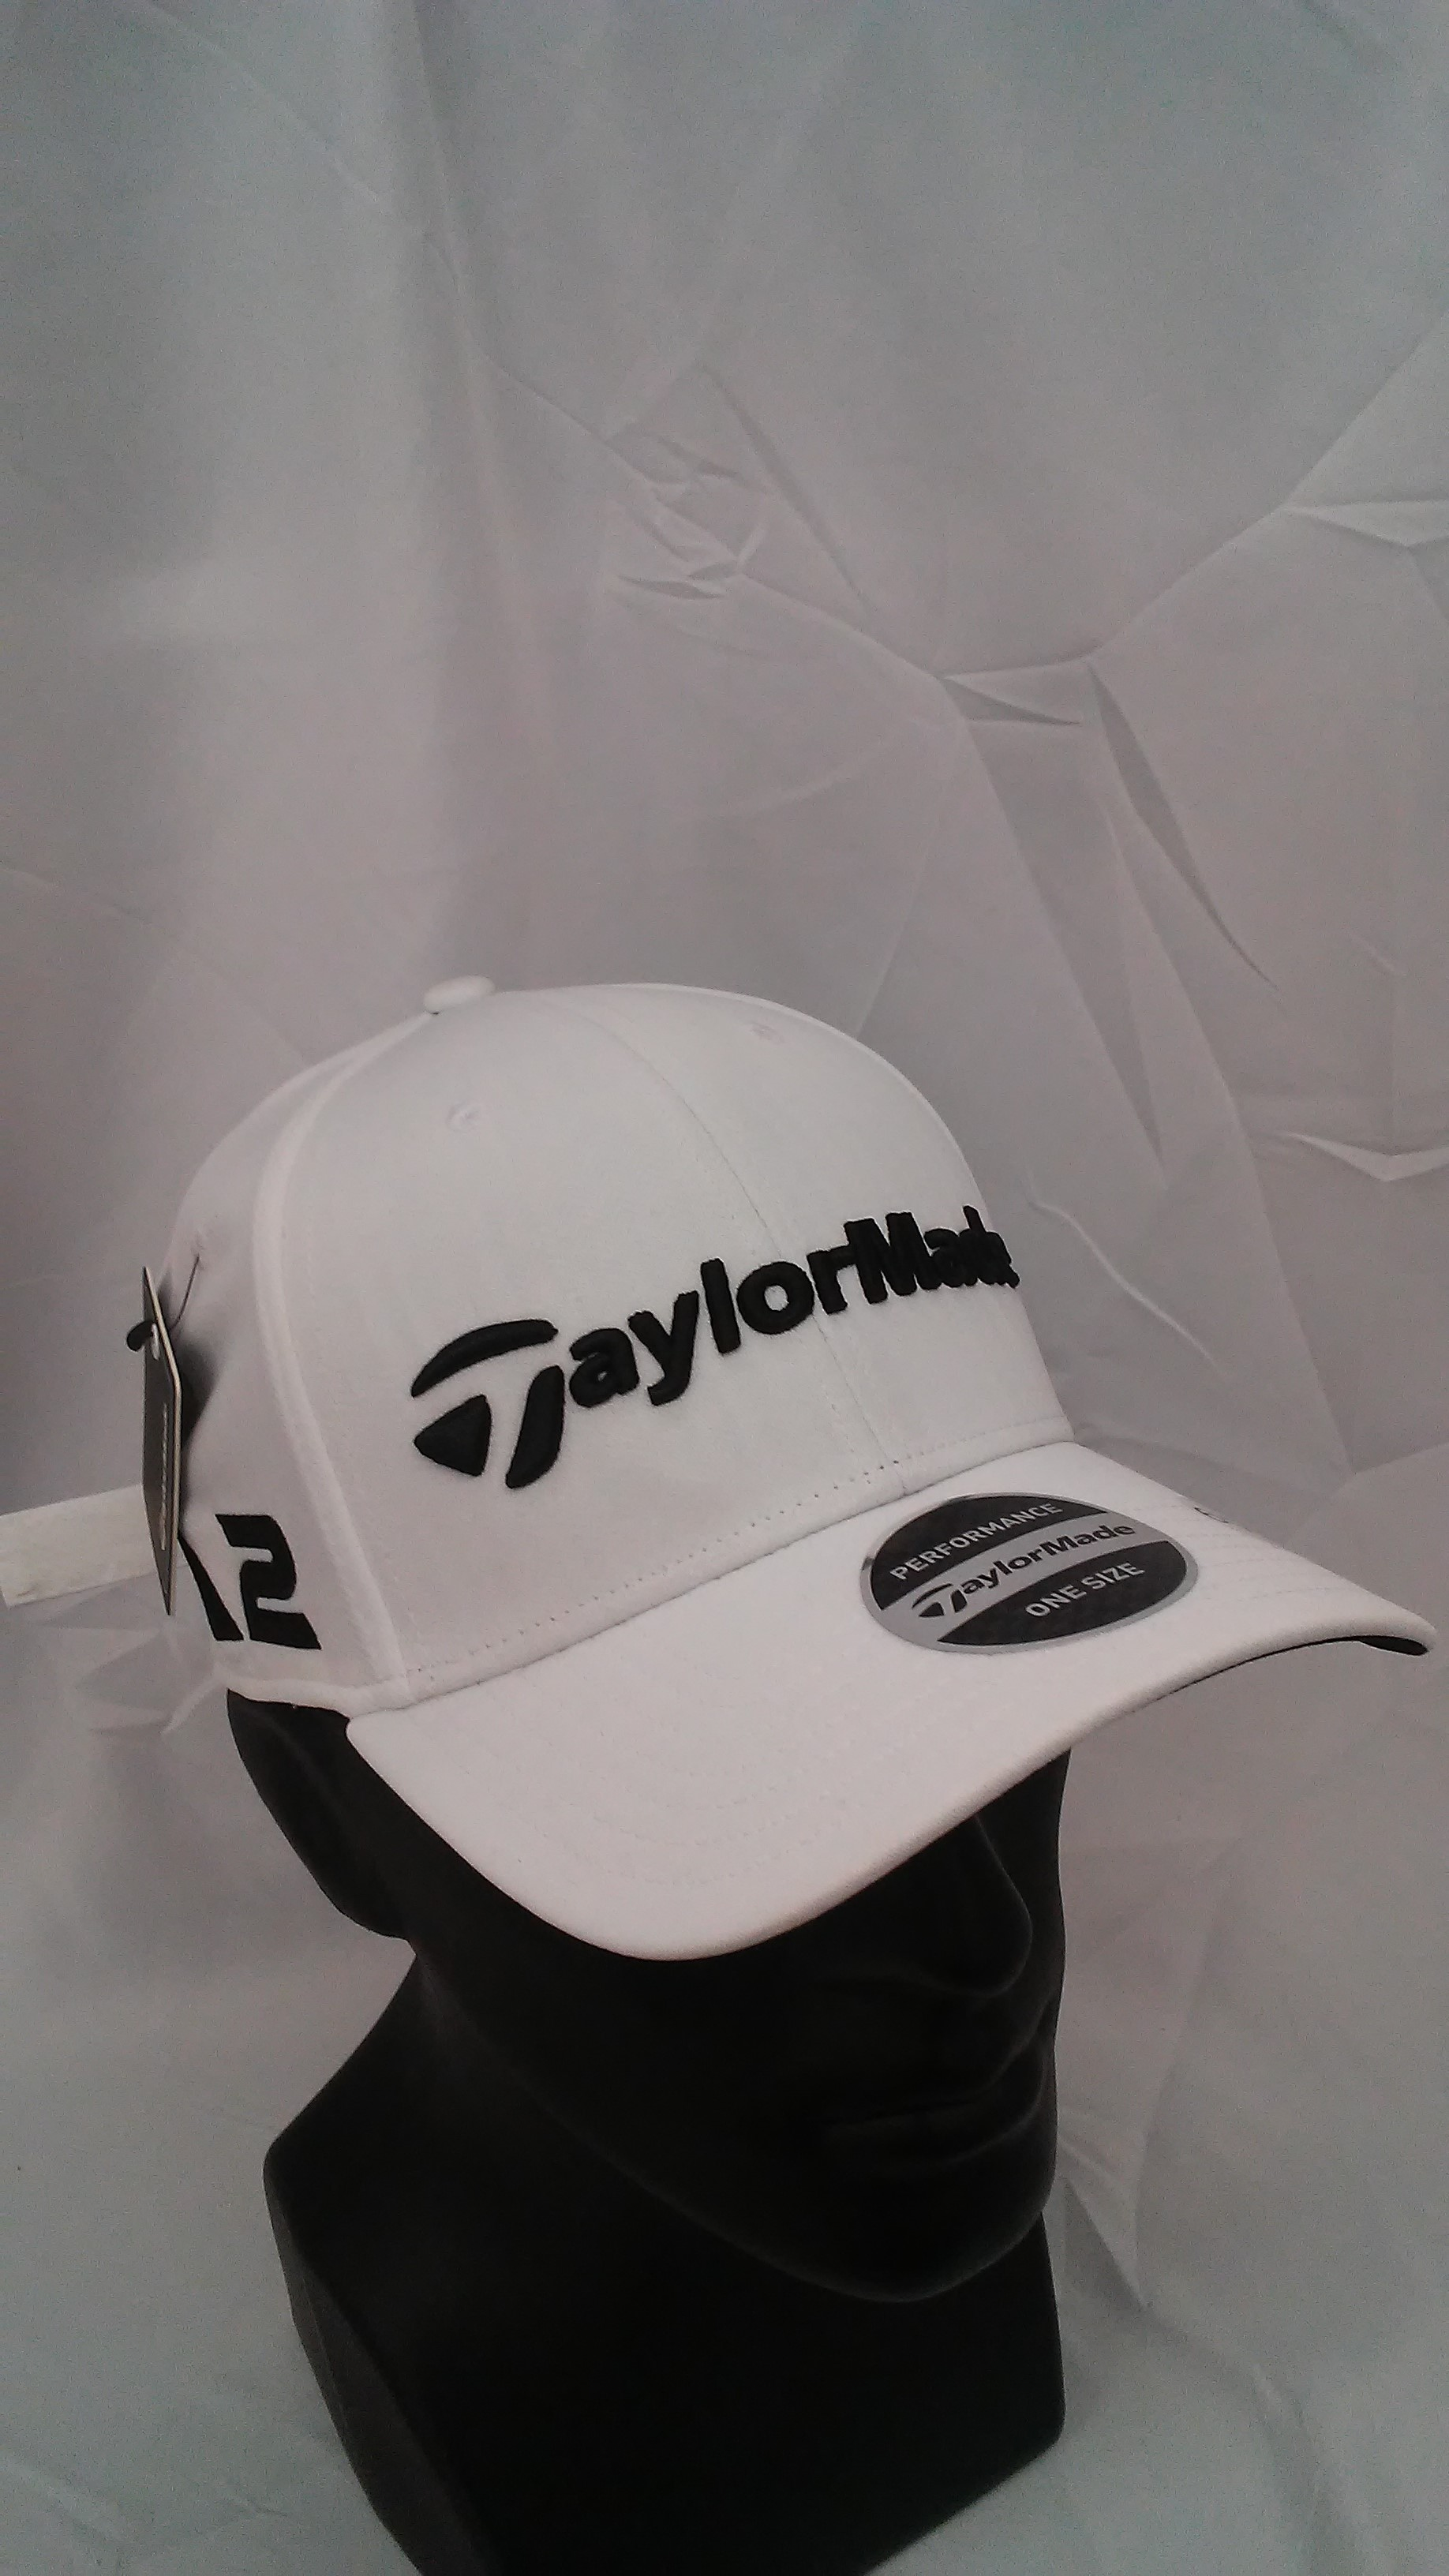 c810f8cd457 Visit our eBay Store for more great deals: Hurricane Golf Men's TaylorMade  Golf 2017 Tour Radar Adjustable Cap White M1 & M2 Logos BUY IT NOW: 9.99!